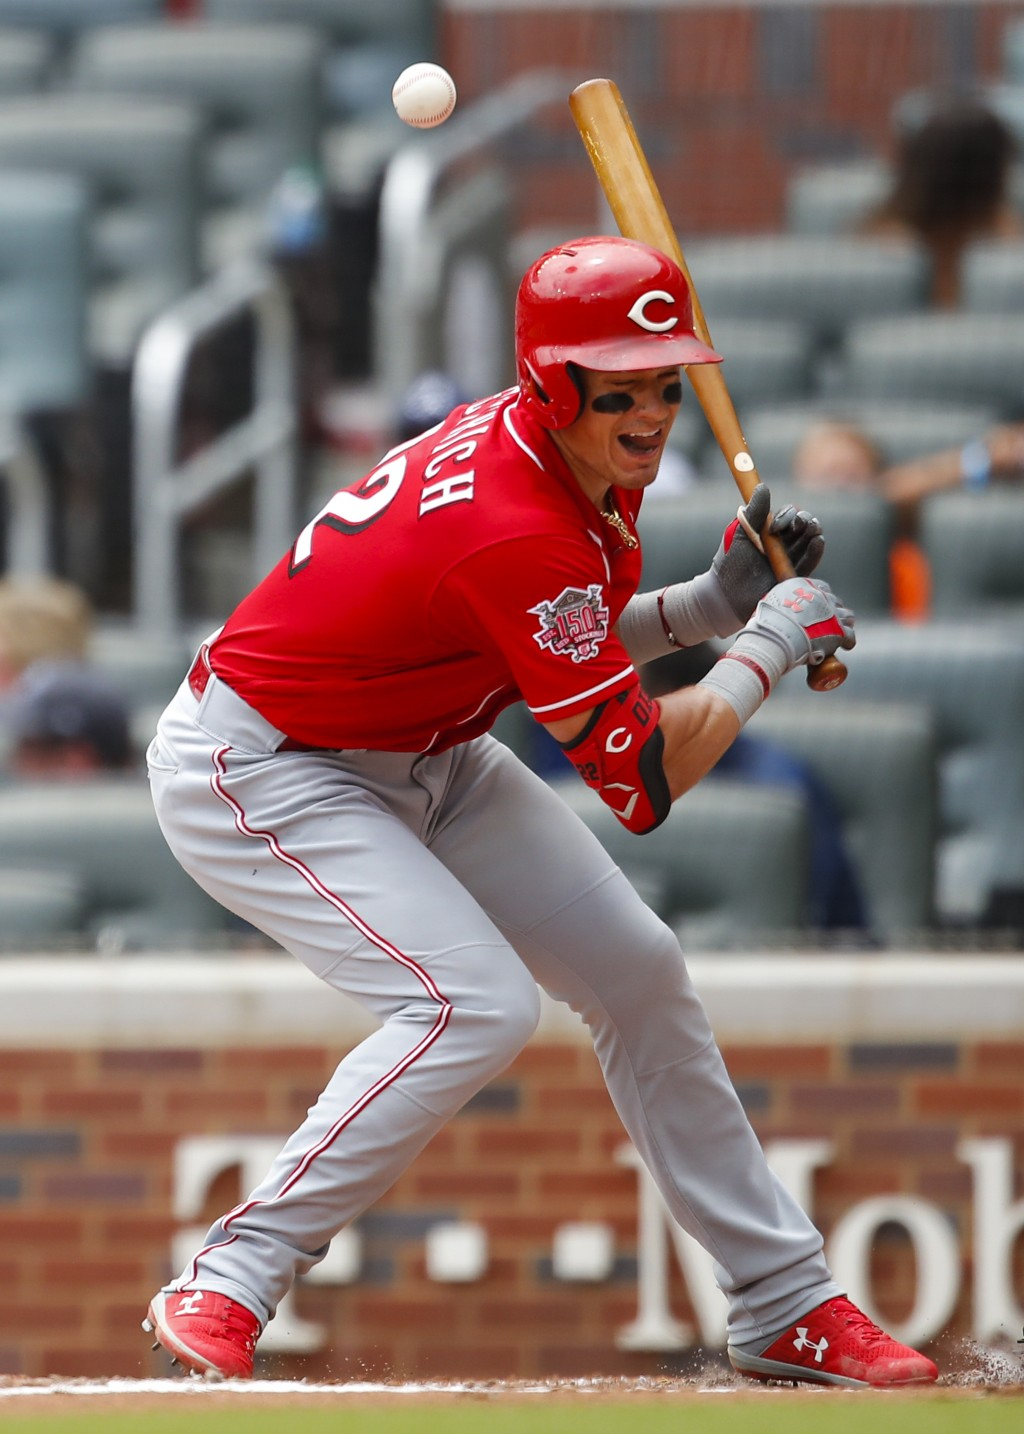 Cincinnati Reds Derek Dietrich (22) is hit by a pitch in the fourth inning of a baseball game against the Atlanta Braves, Sunday, Aug. 4, 2019, in Atl